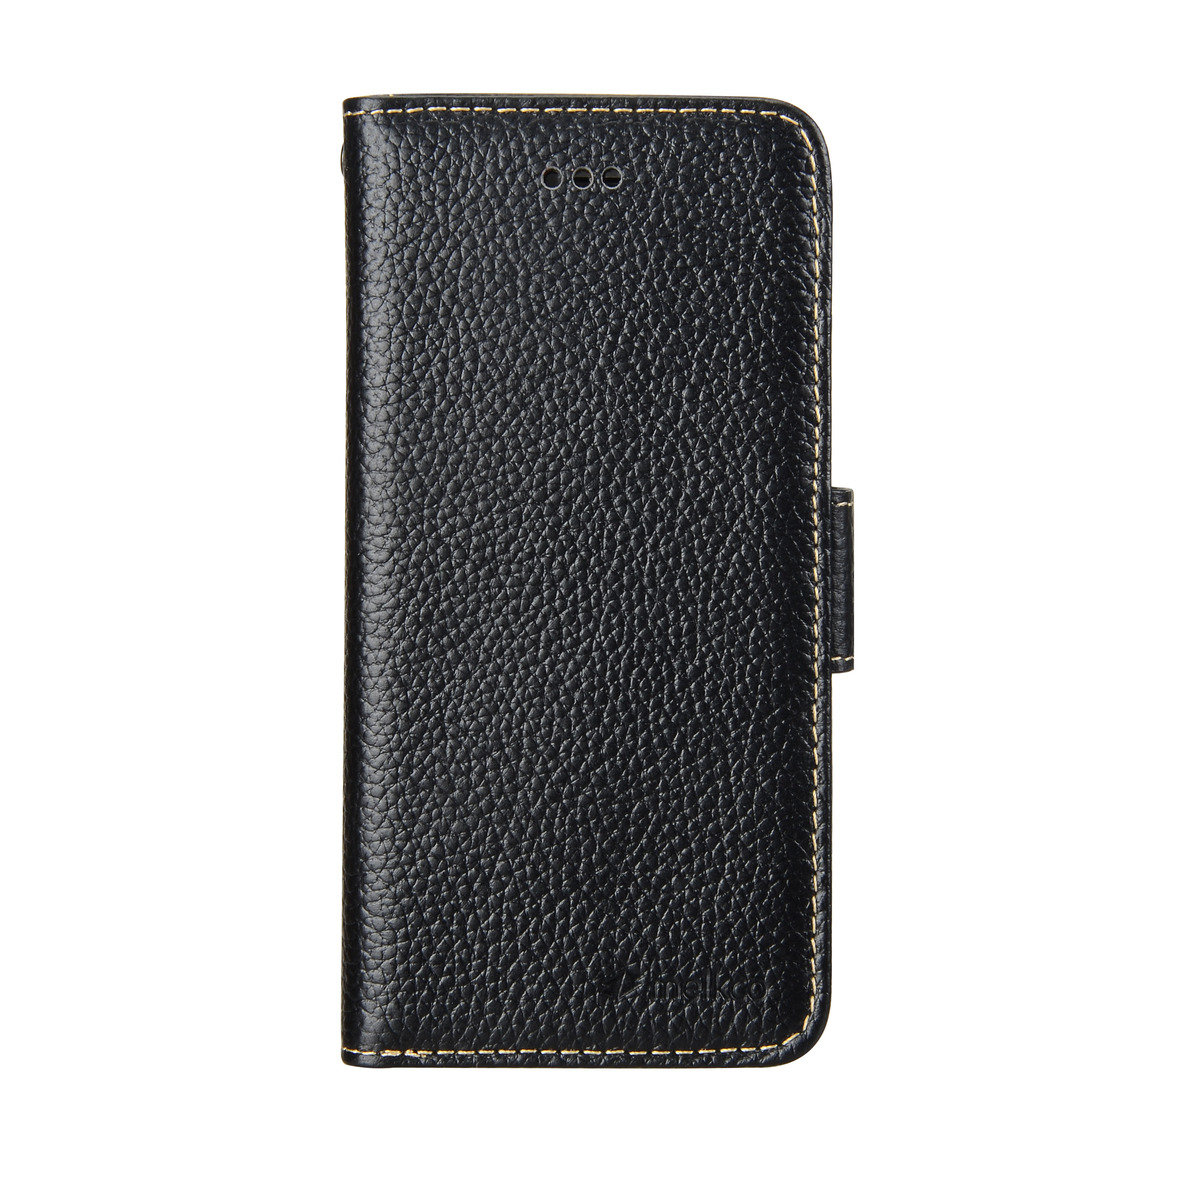 """iPhone 6/6S (4.7"""") Wallet Book Type高級真皮手機套 - 黑色荔枝紋"""